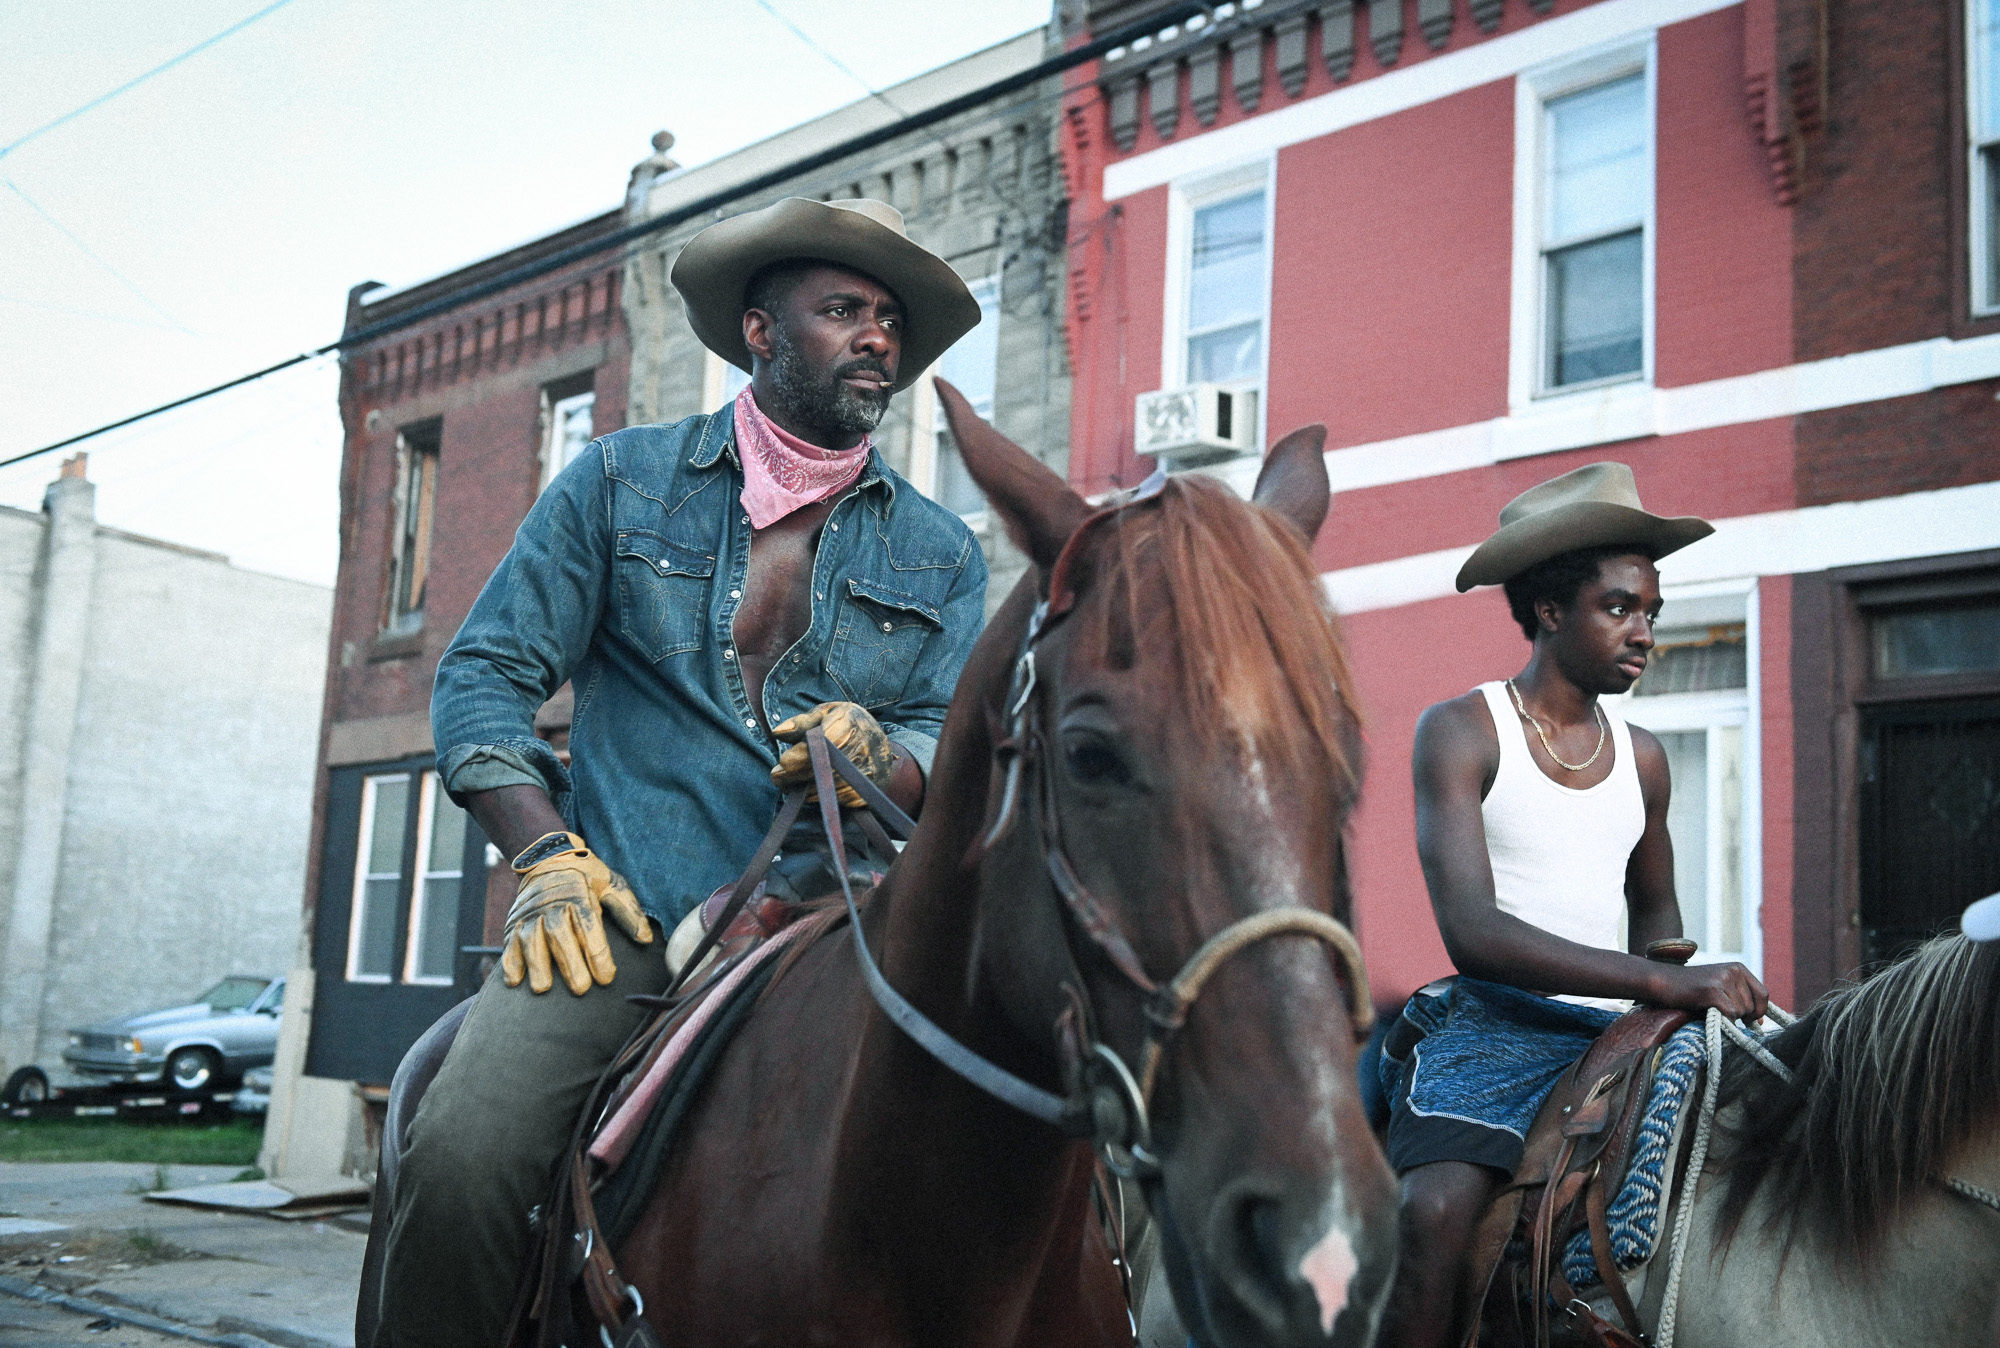 The First Trailer For 'Concrete Cowboy' Starring Idris Elba Has Arrived